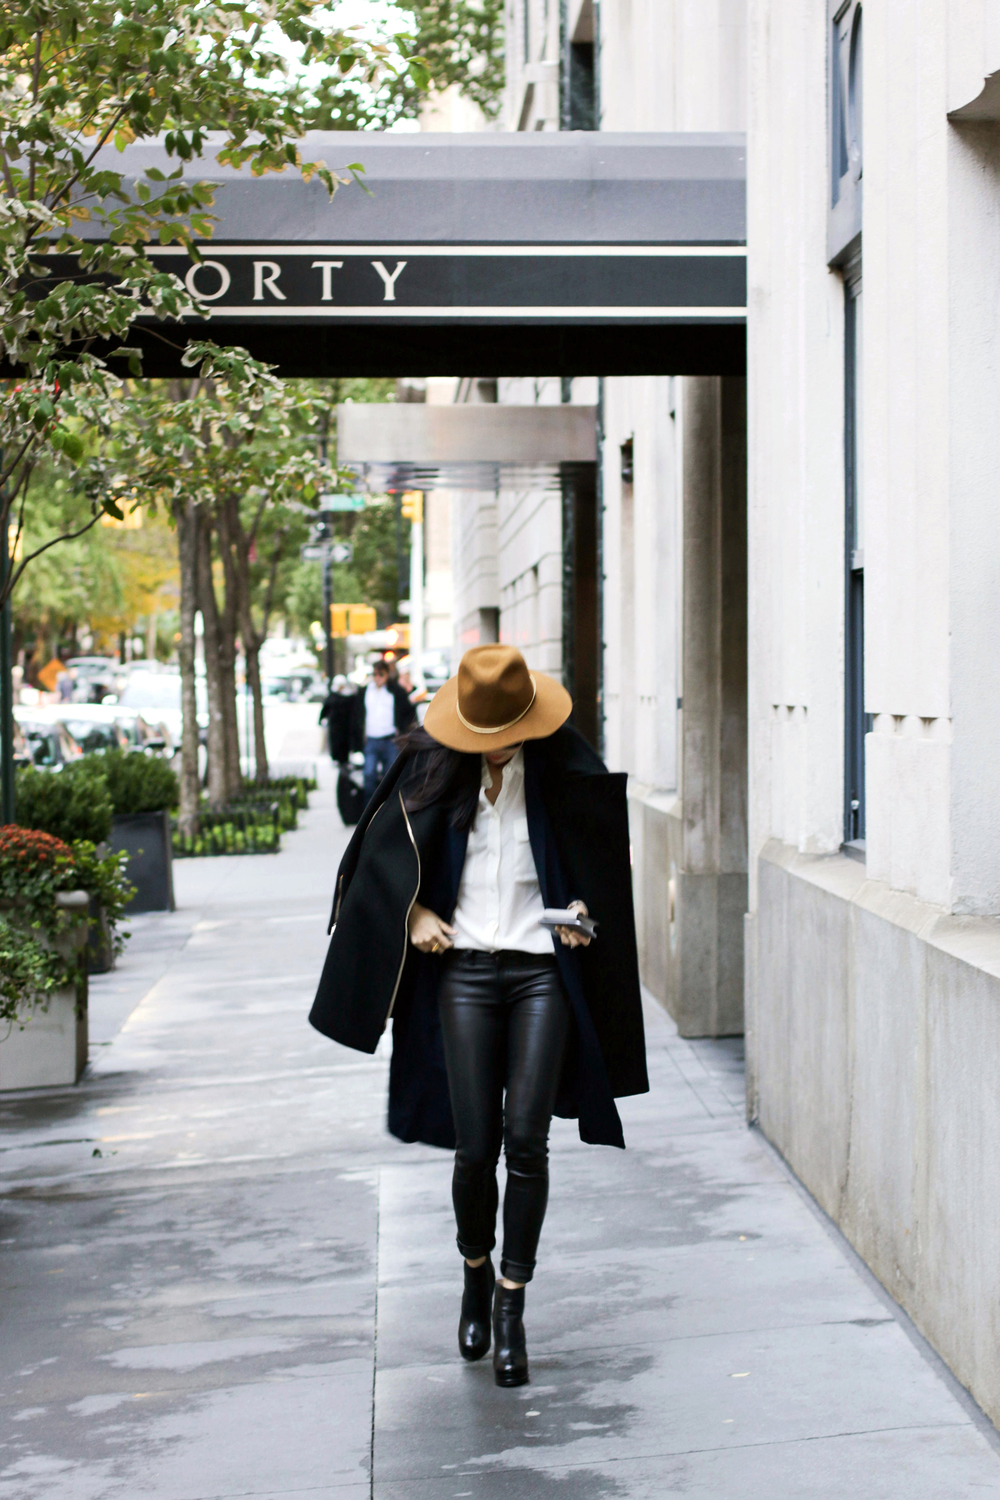 Equipment Top, Rag & Bone Leather Jeans, Asos Duster Coat, Stella McCartney Coat, Janessa Leone Hat, The Row Sunglasses, Gjenmi Necklace, Chanel Shoes and Bag